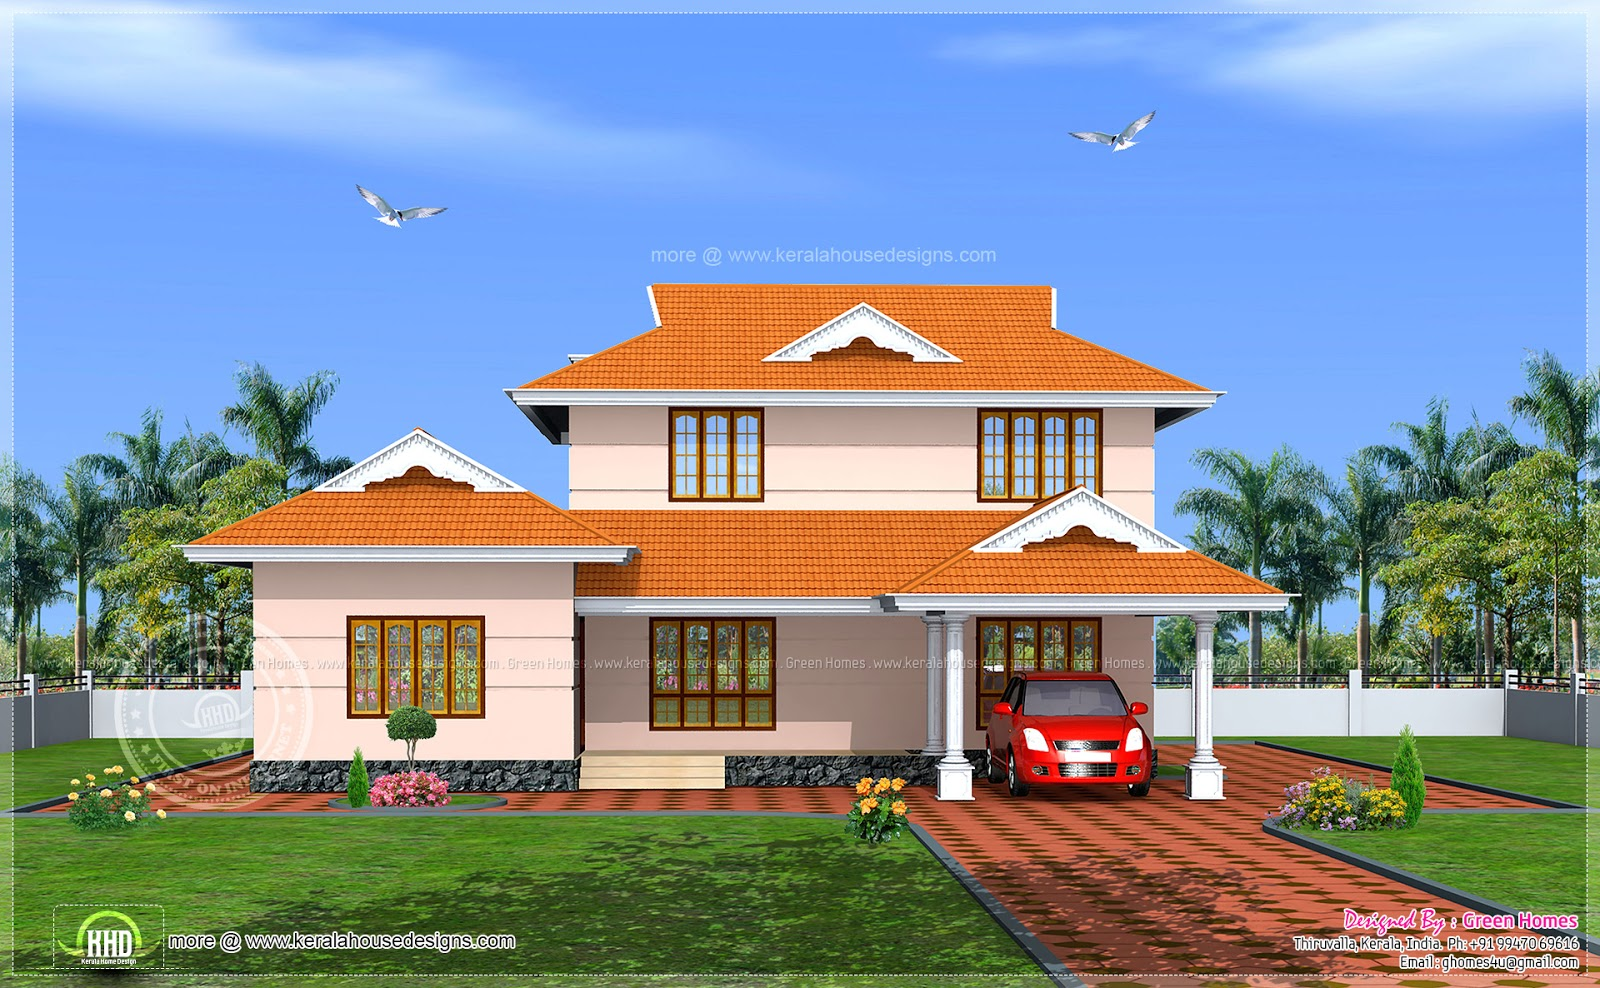 House plans and design house plans in kerala model with for Homes models and plans